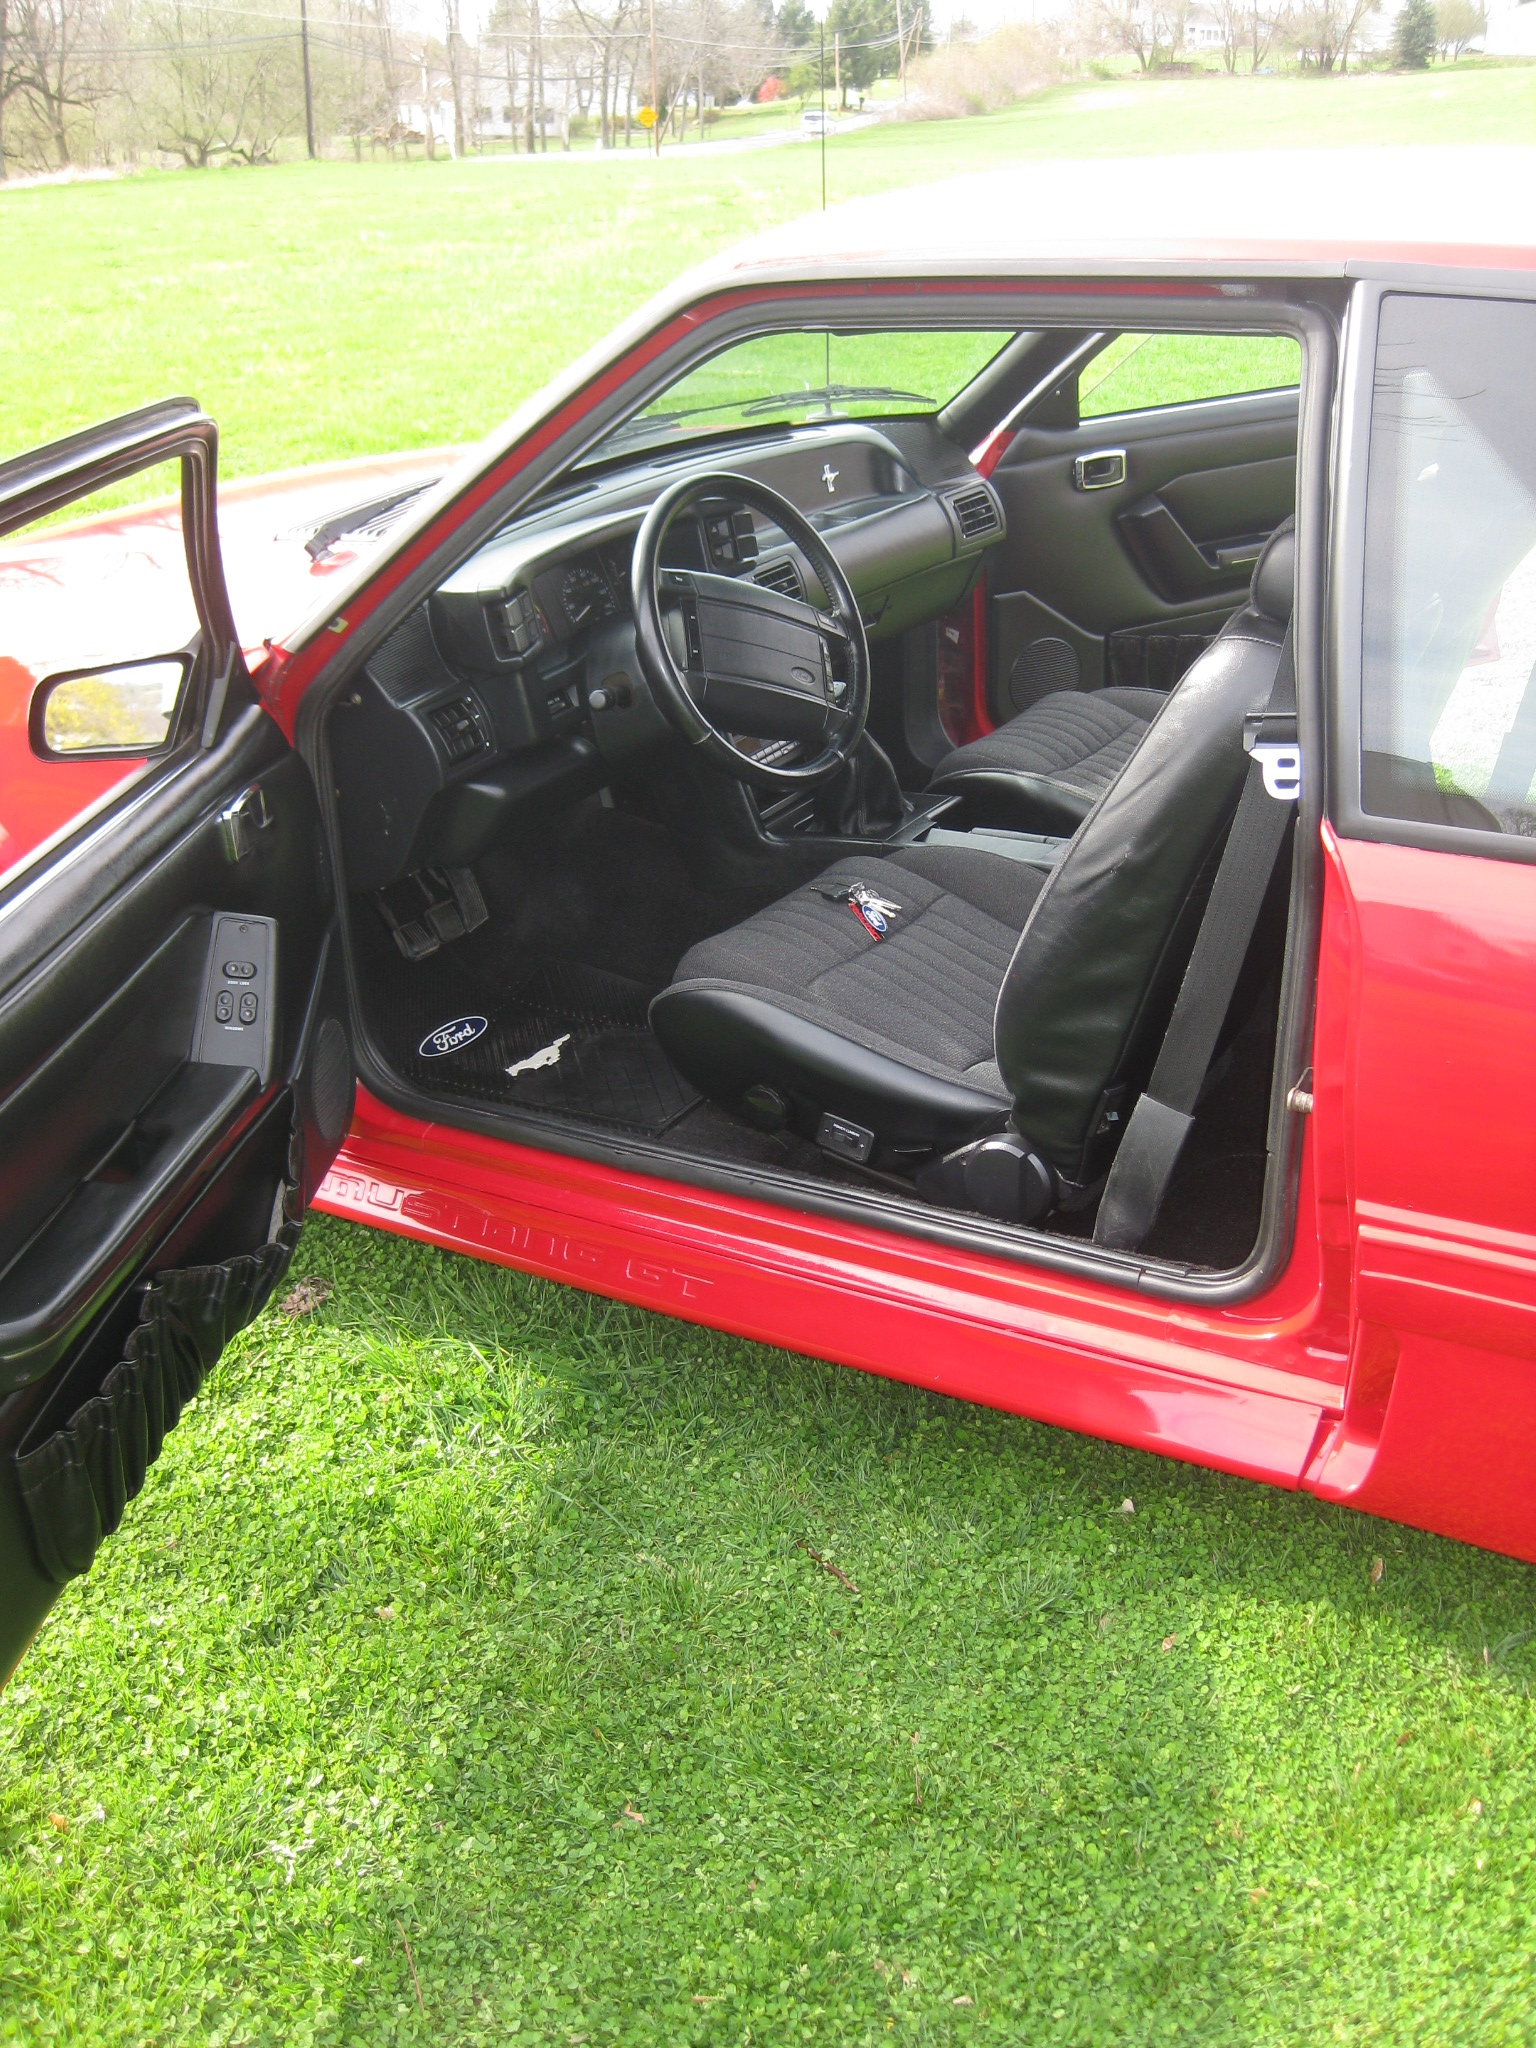 9redfox3 1993 Ford Mustang 14023632